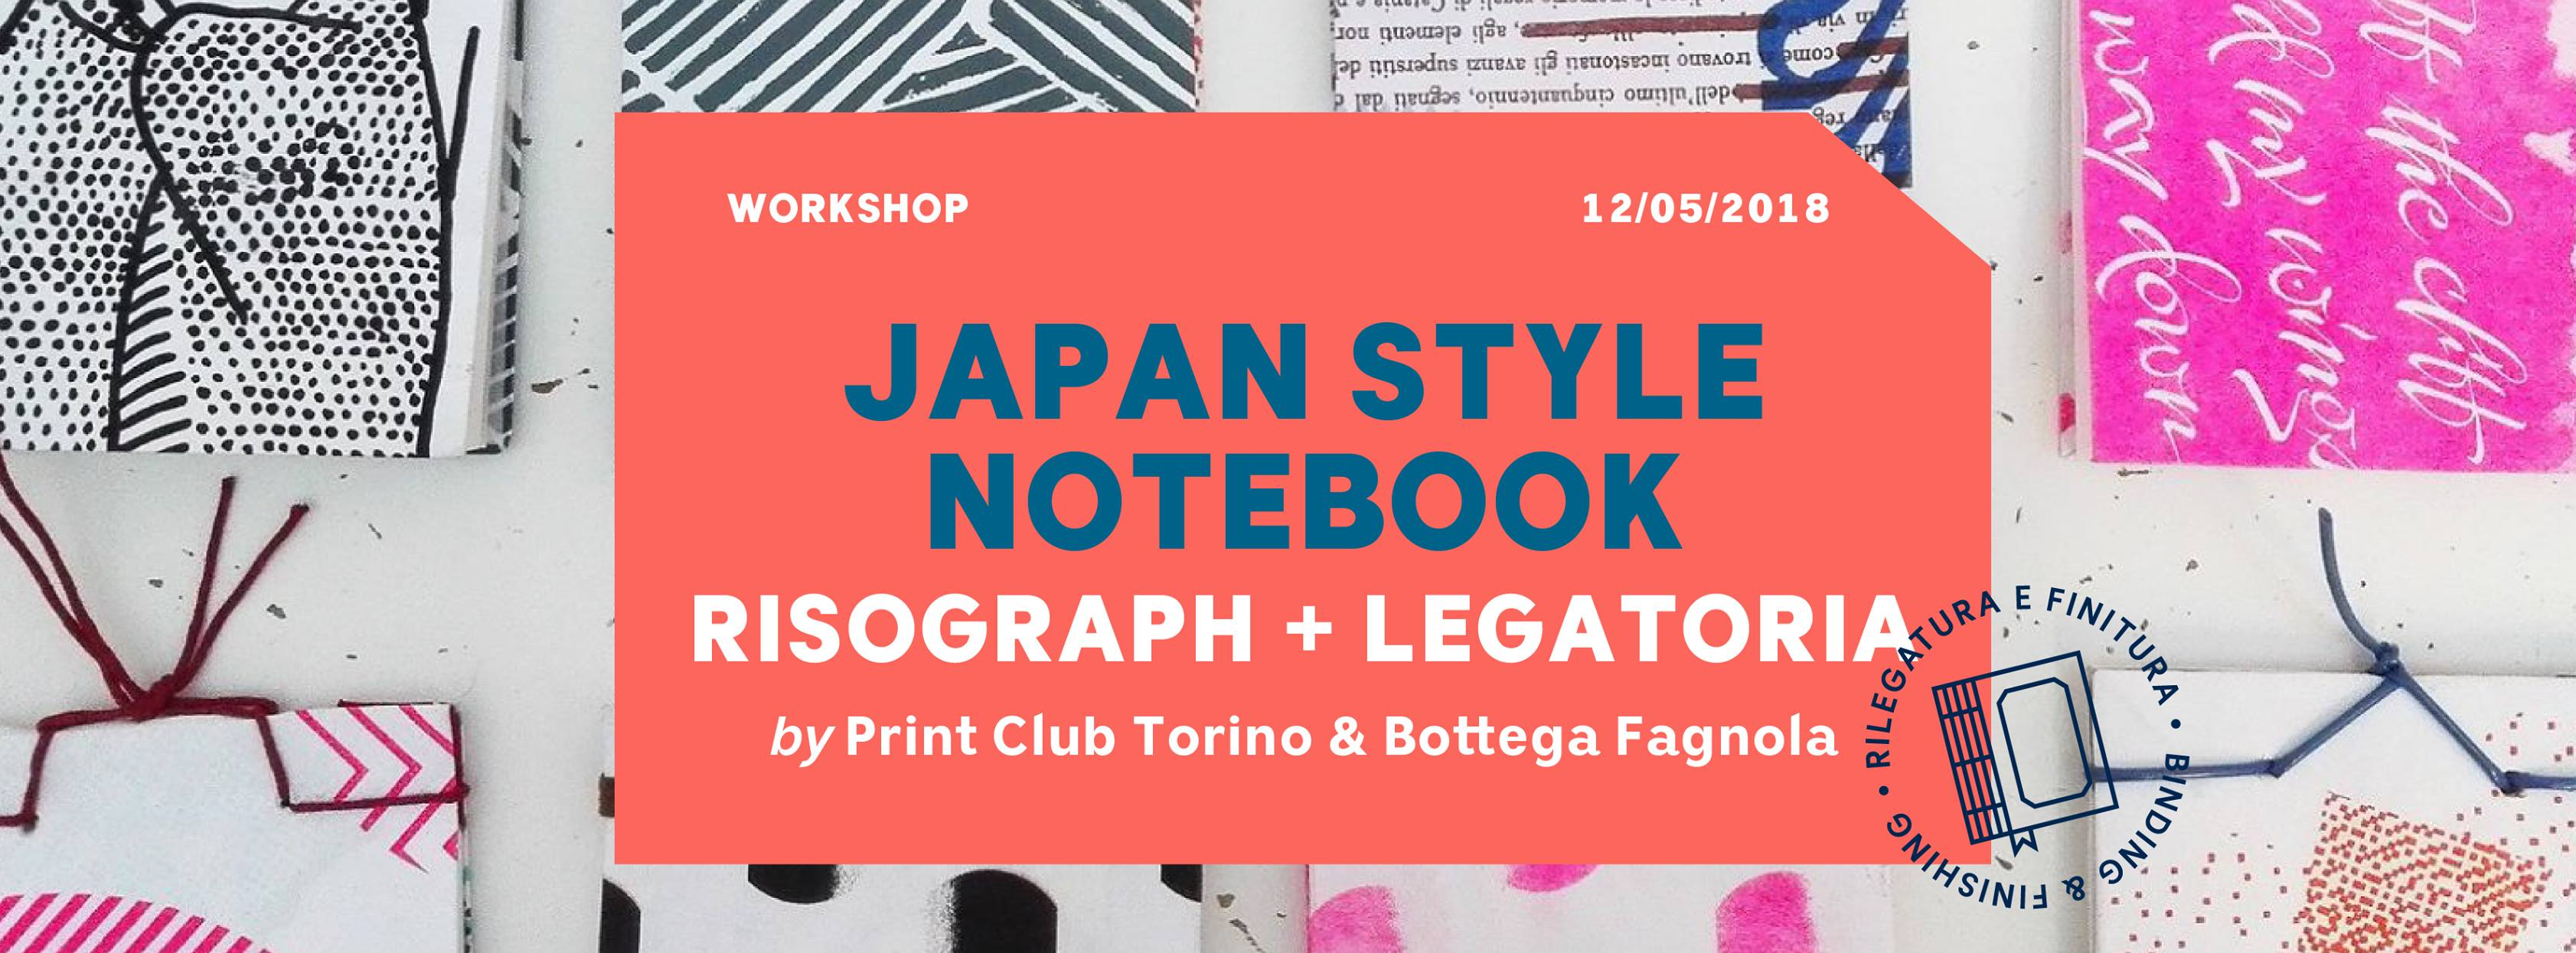 Japan Style Notebook - workshop stampa risograph e legatoria di Bottega Fagnola e Print Club Torino